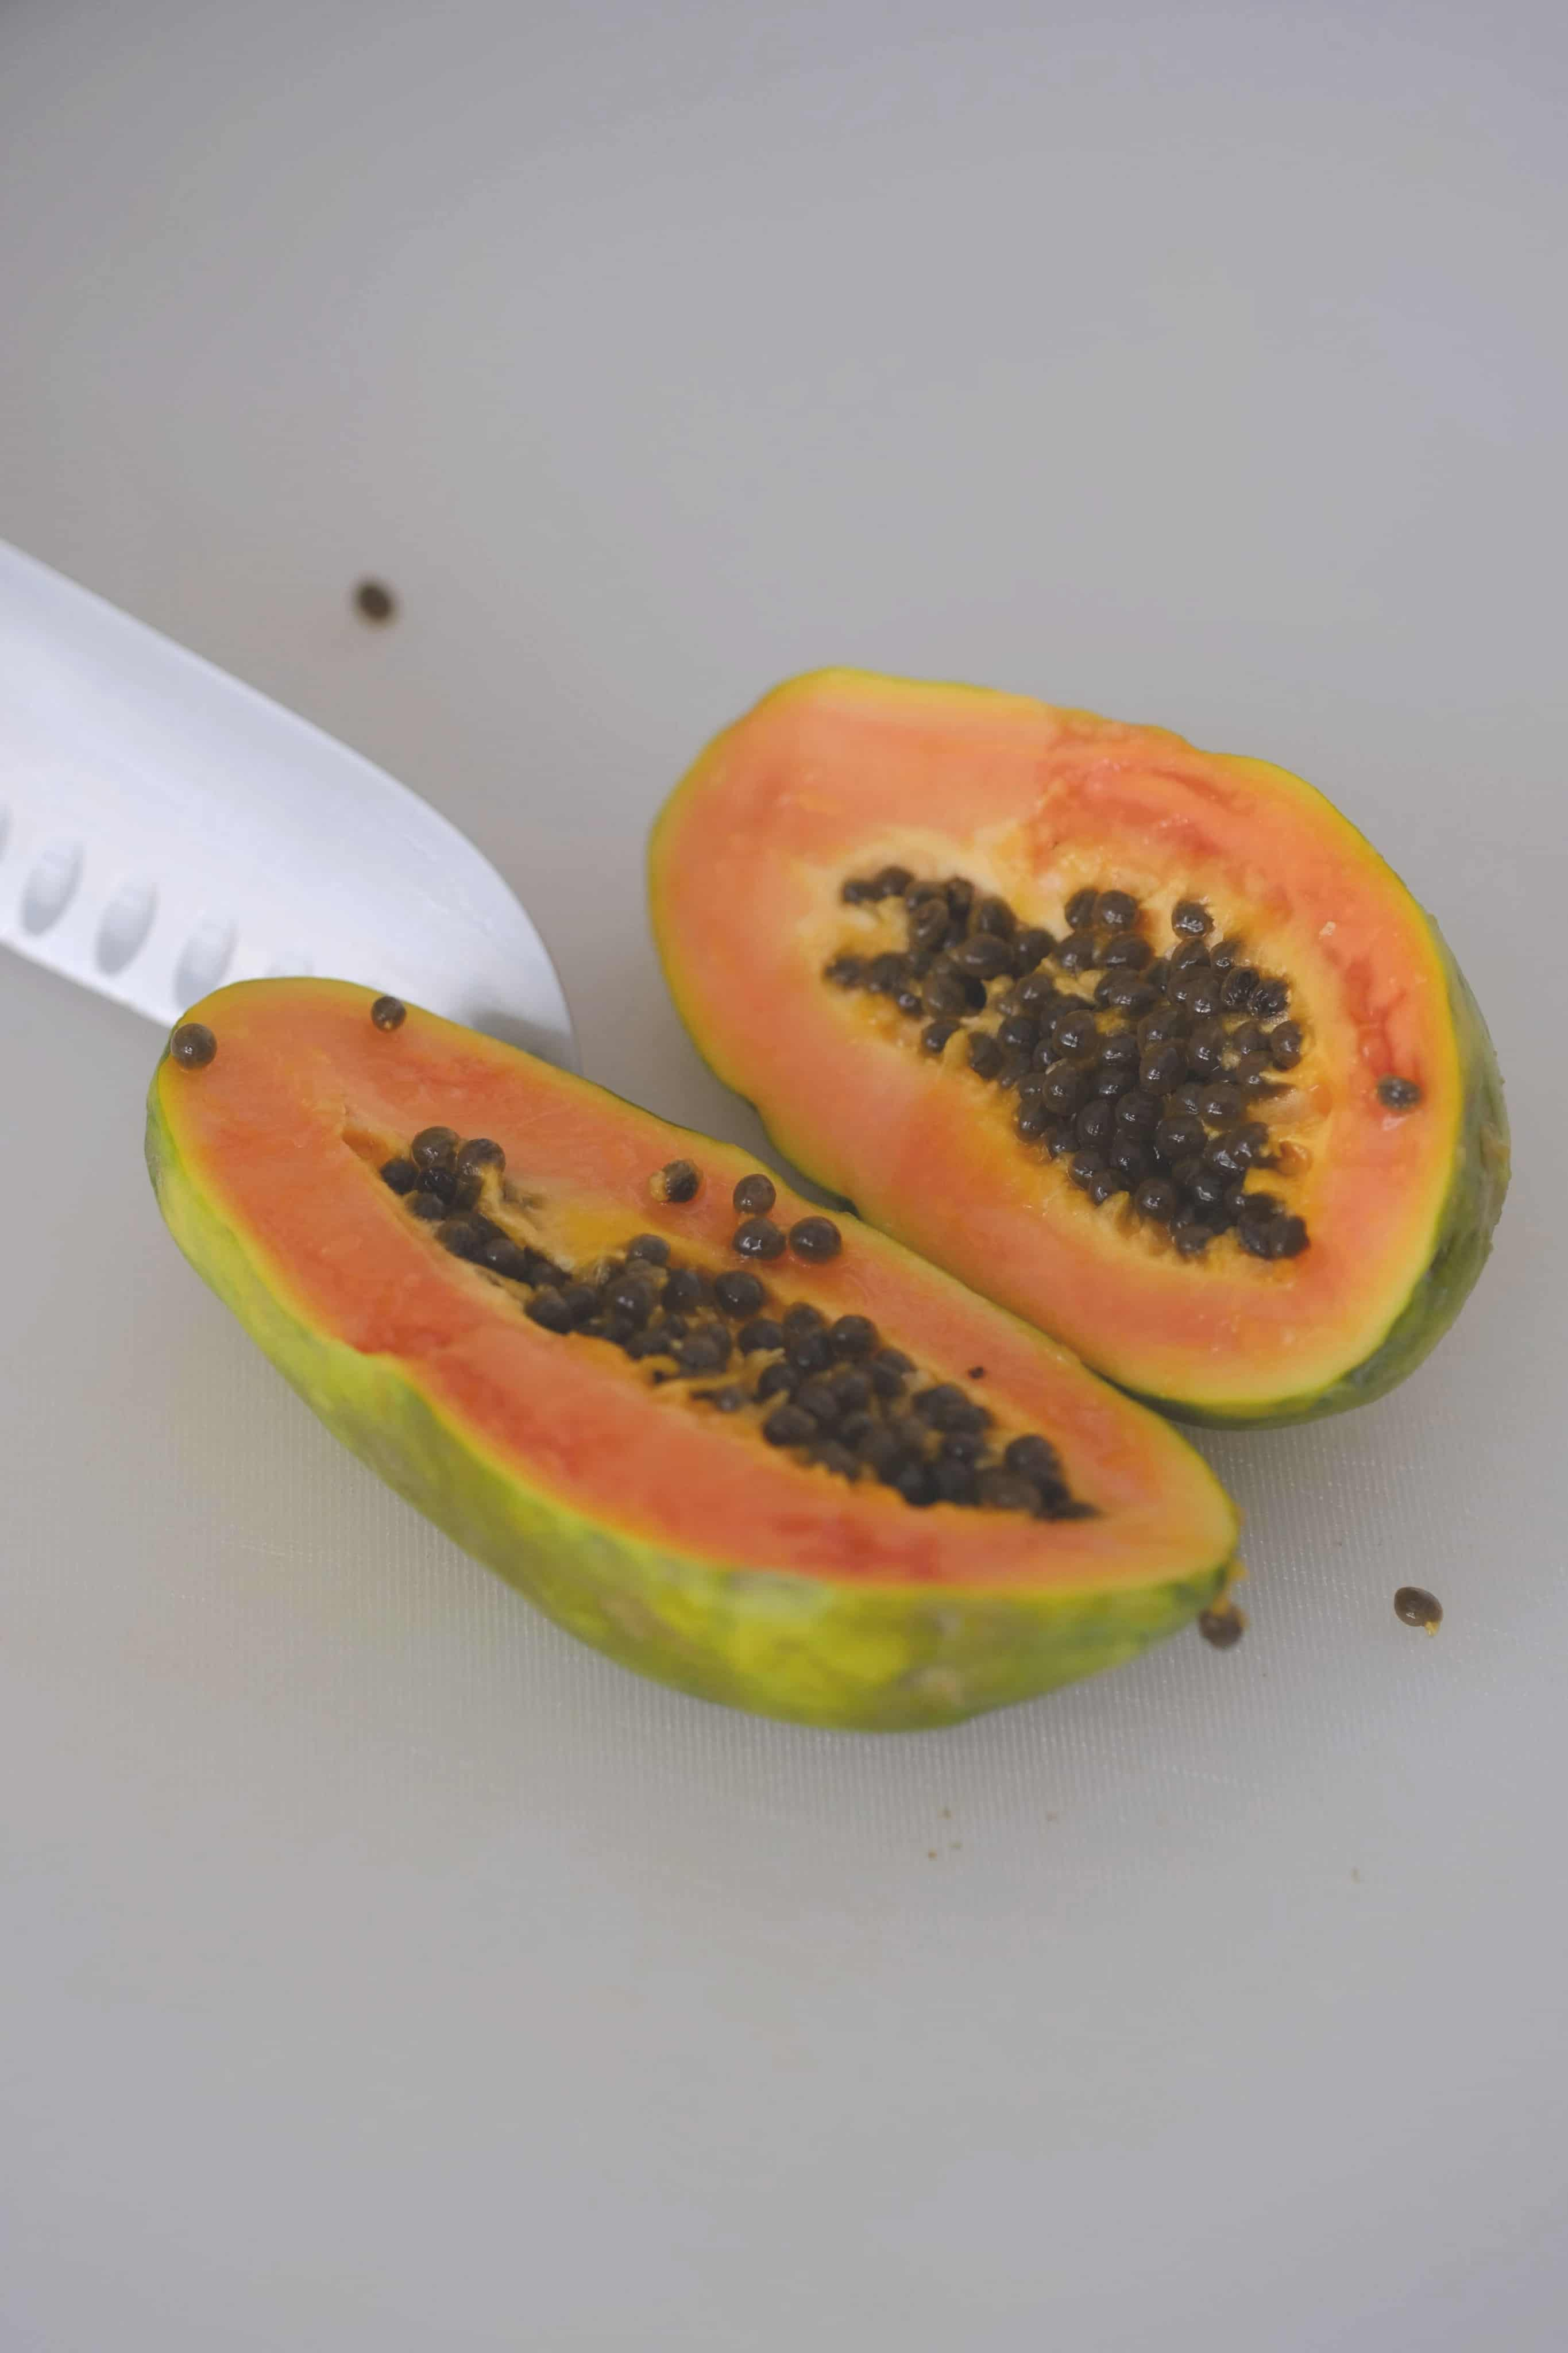 a halved papaya on a white cutting board with a knife